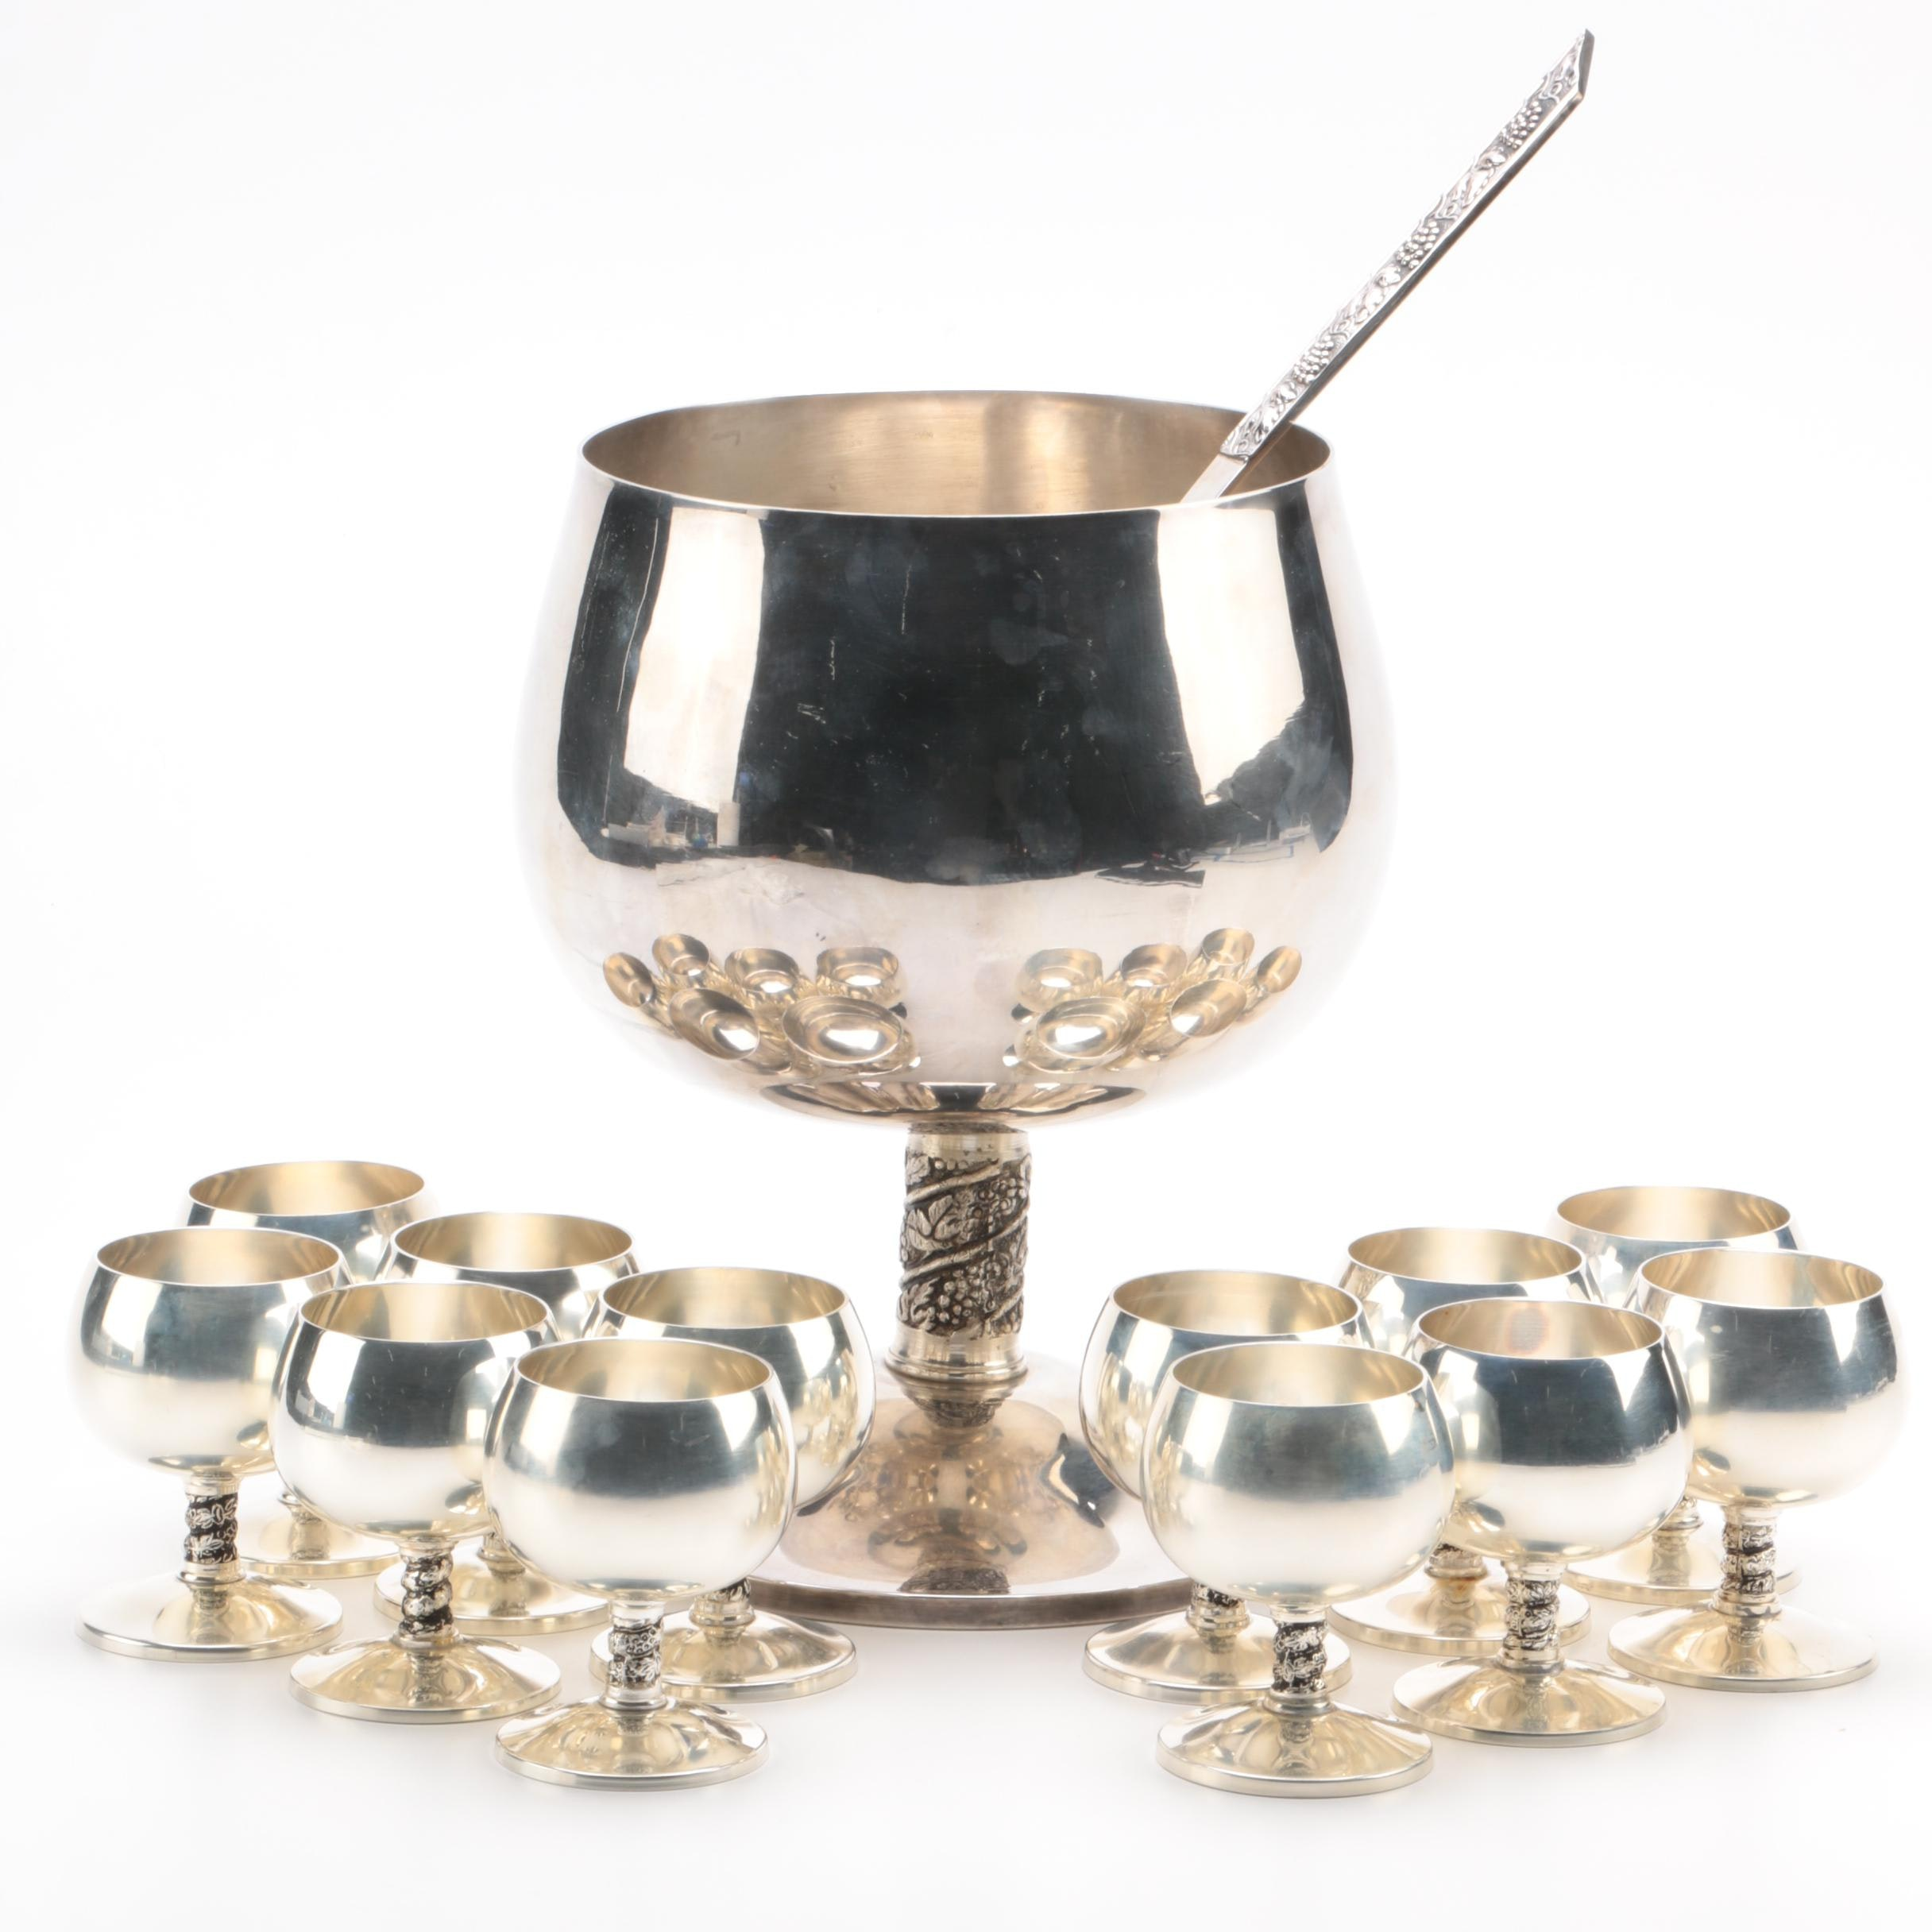 Spanish Silver Plate Punch Bowl, Ladle, and Snifters